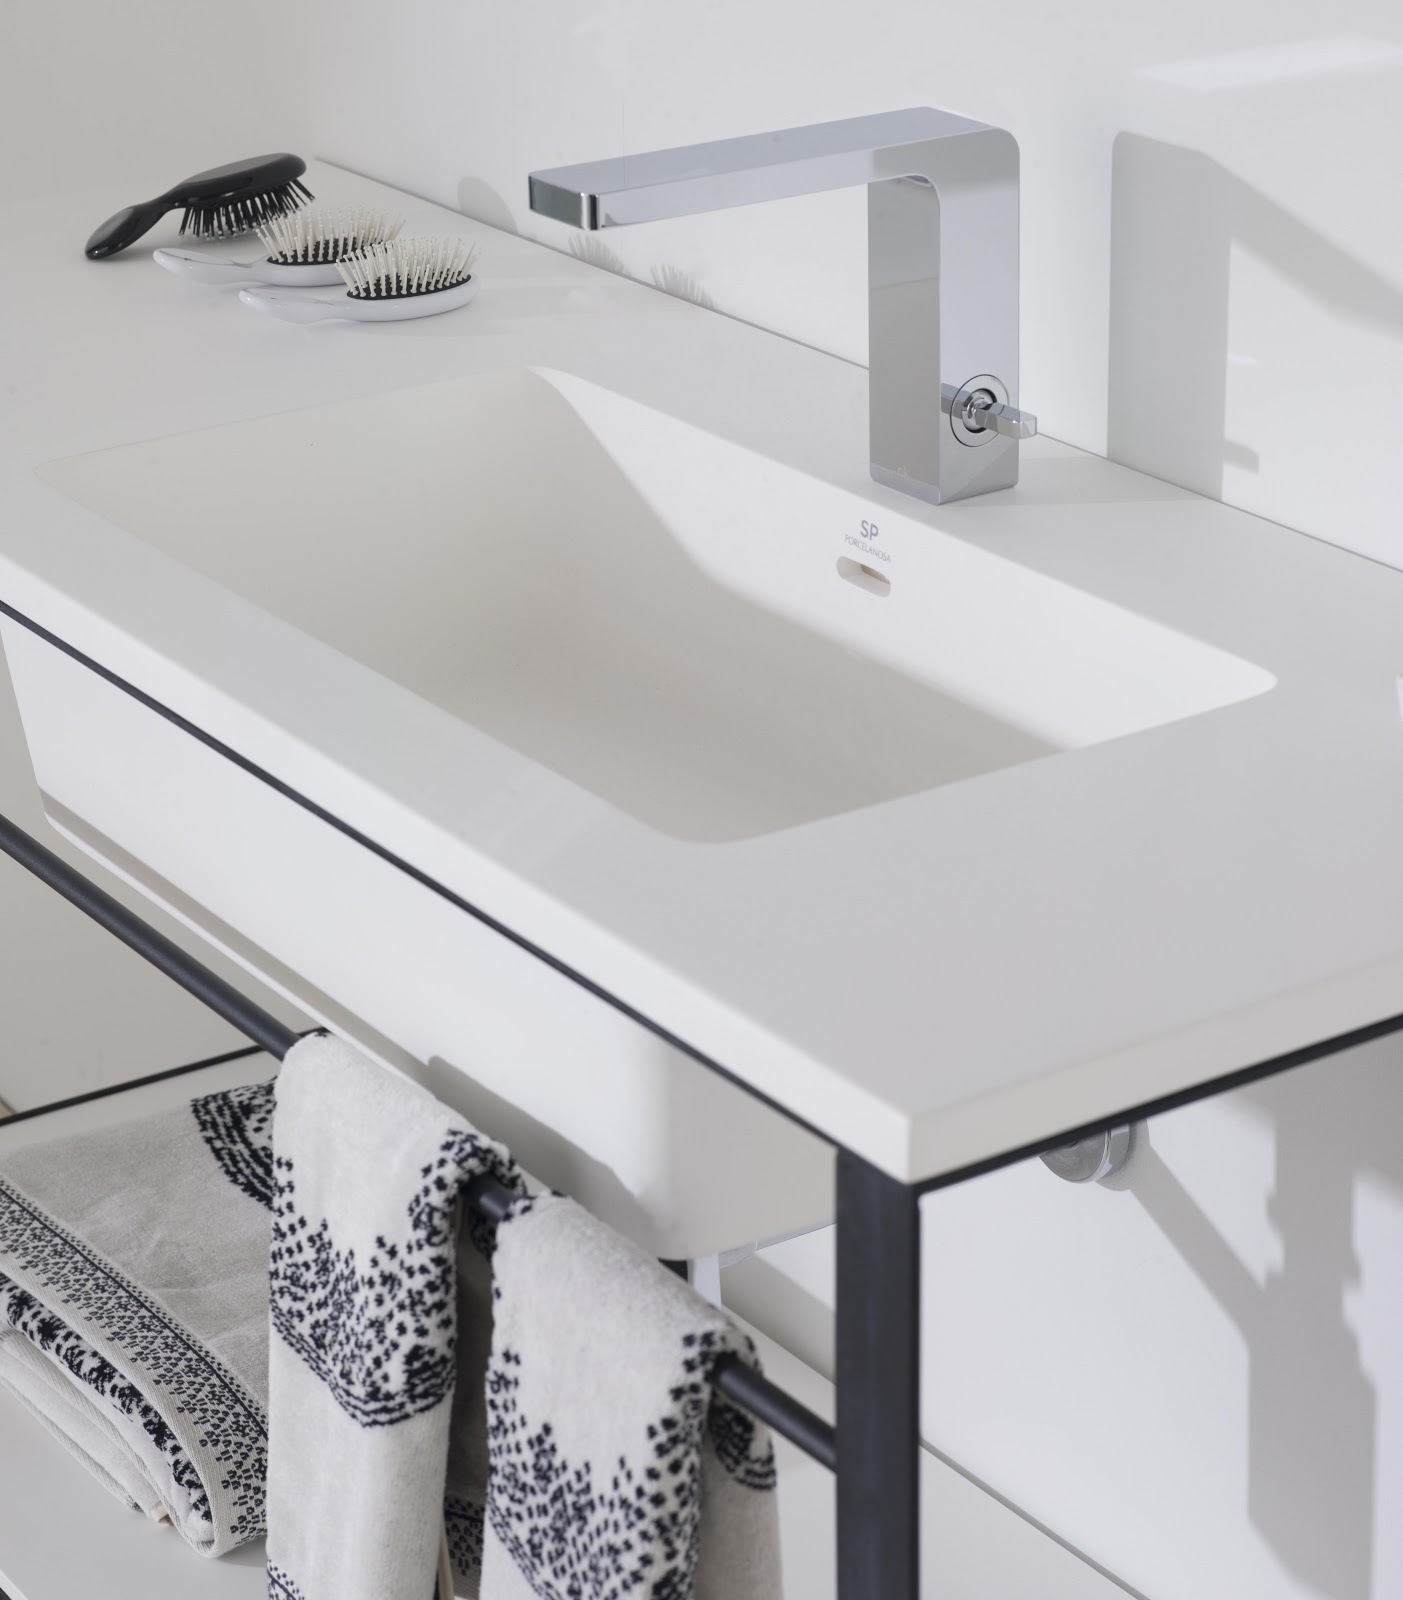 Encimeras Baño Krion:PORCELANOSA Shower Tray Modul Bathrooms